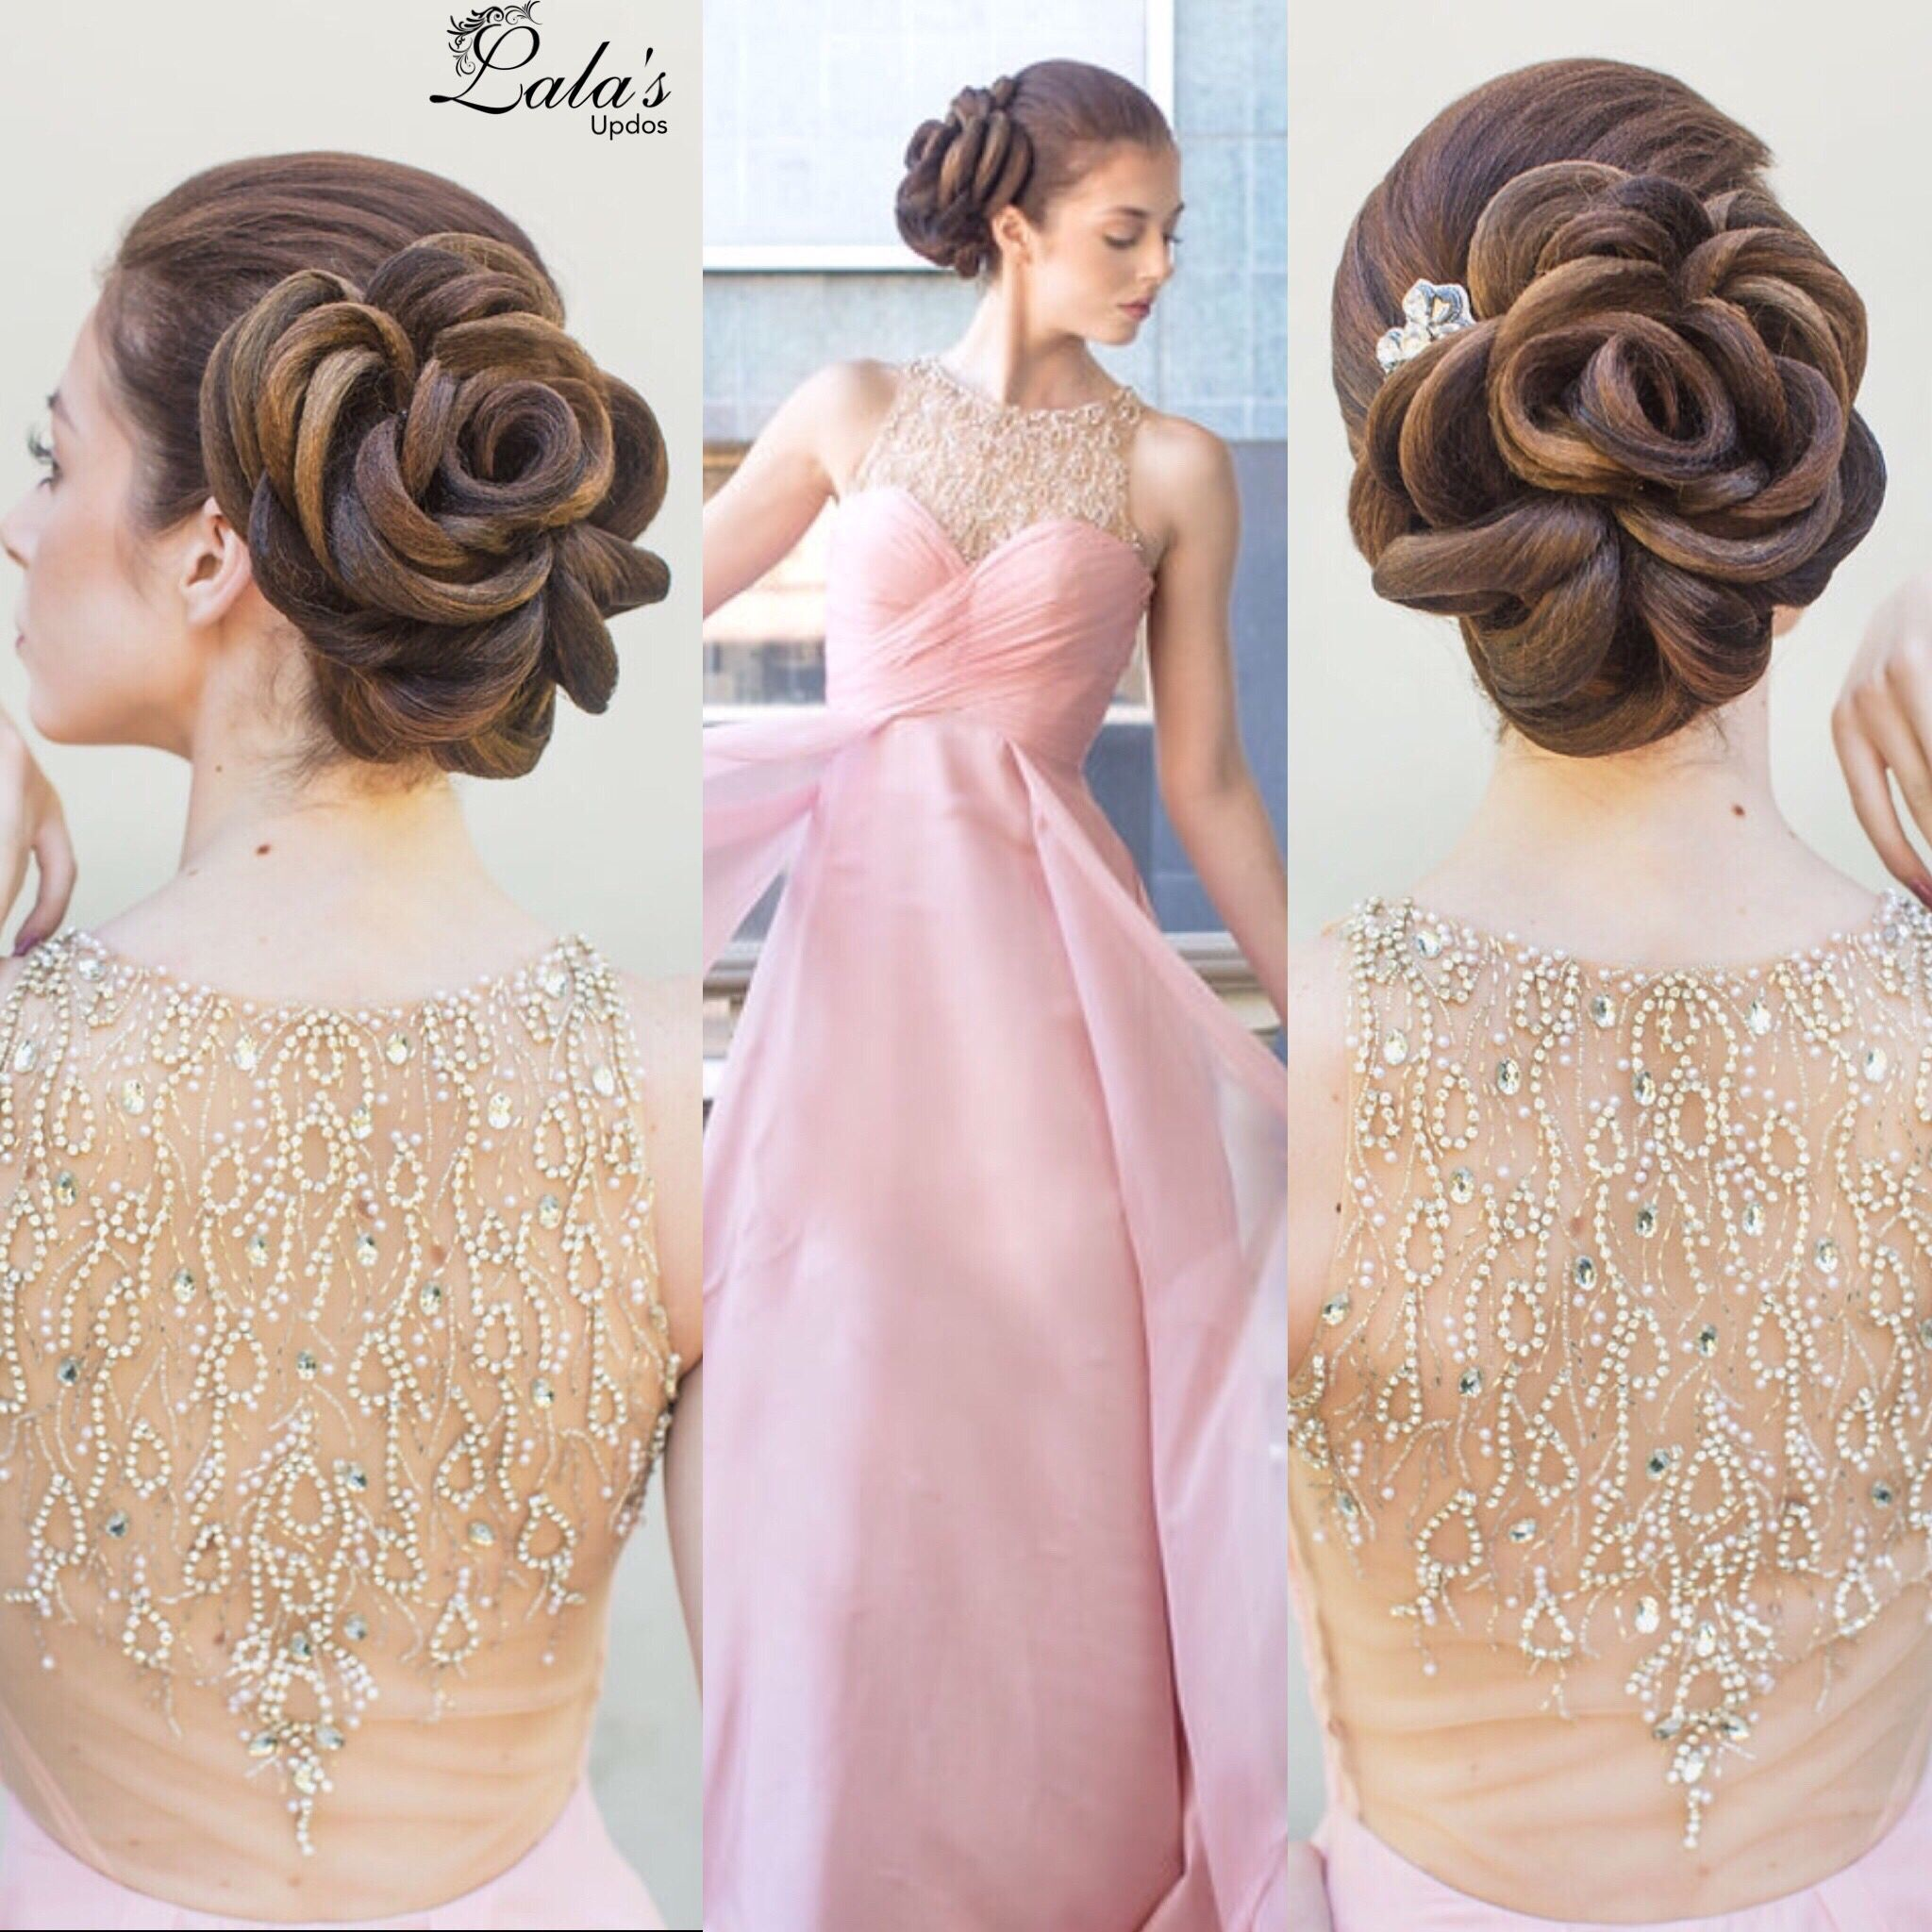 Rose Updo / Updos / Upstyles / Bridal Hair / Bridal Updos / Wedding ...